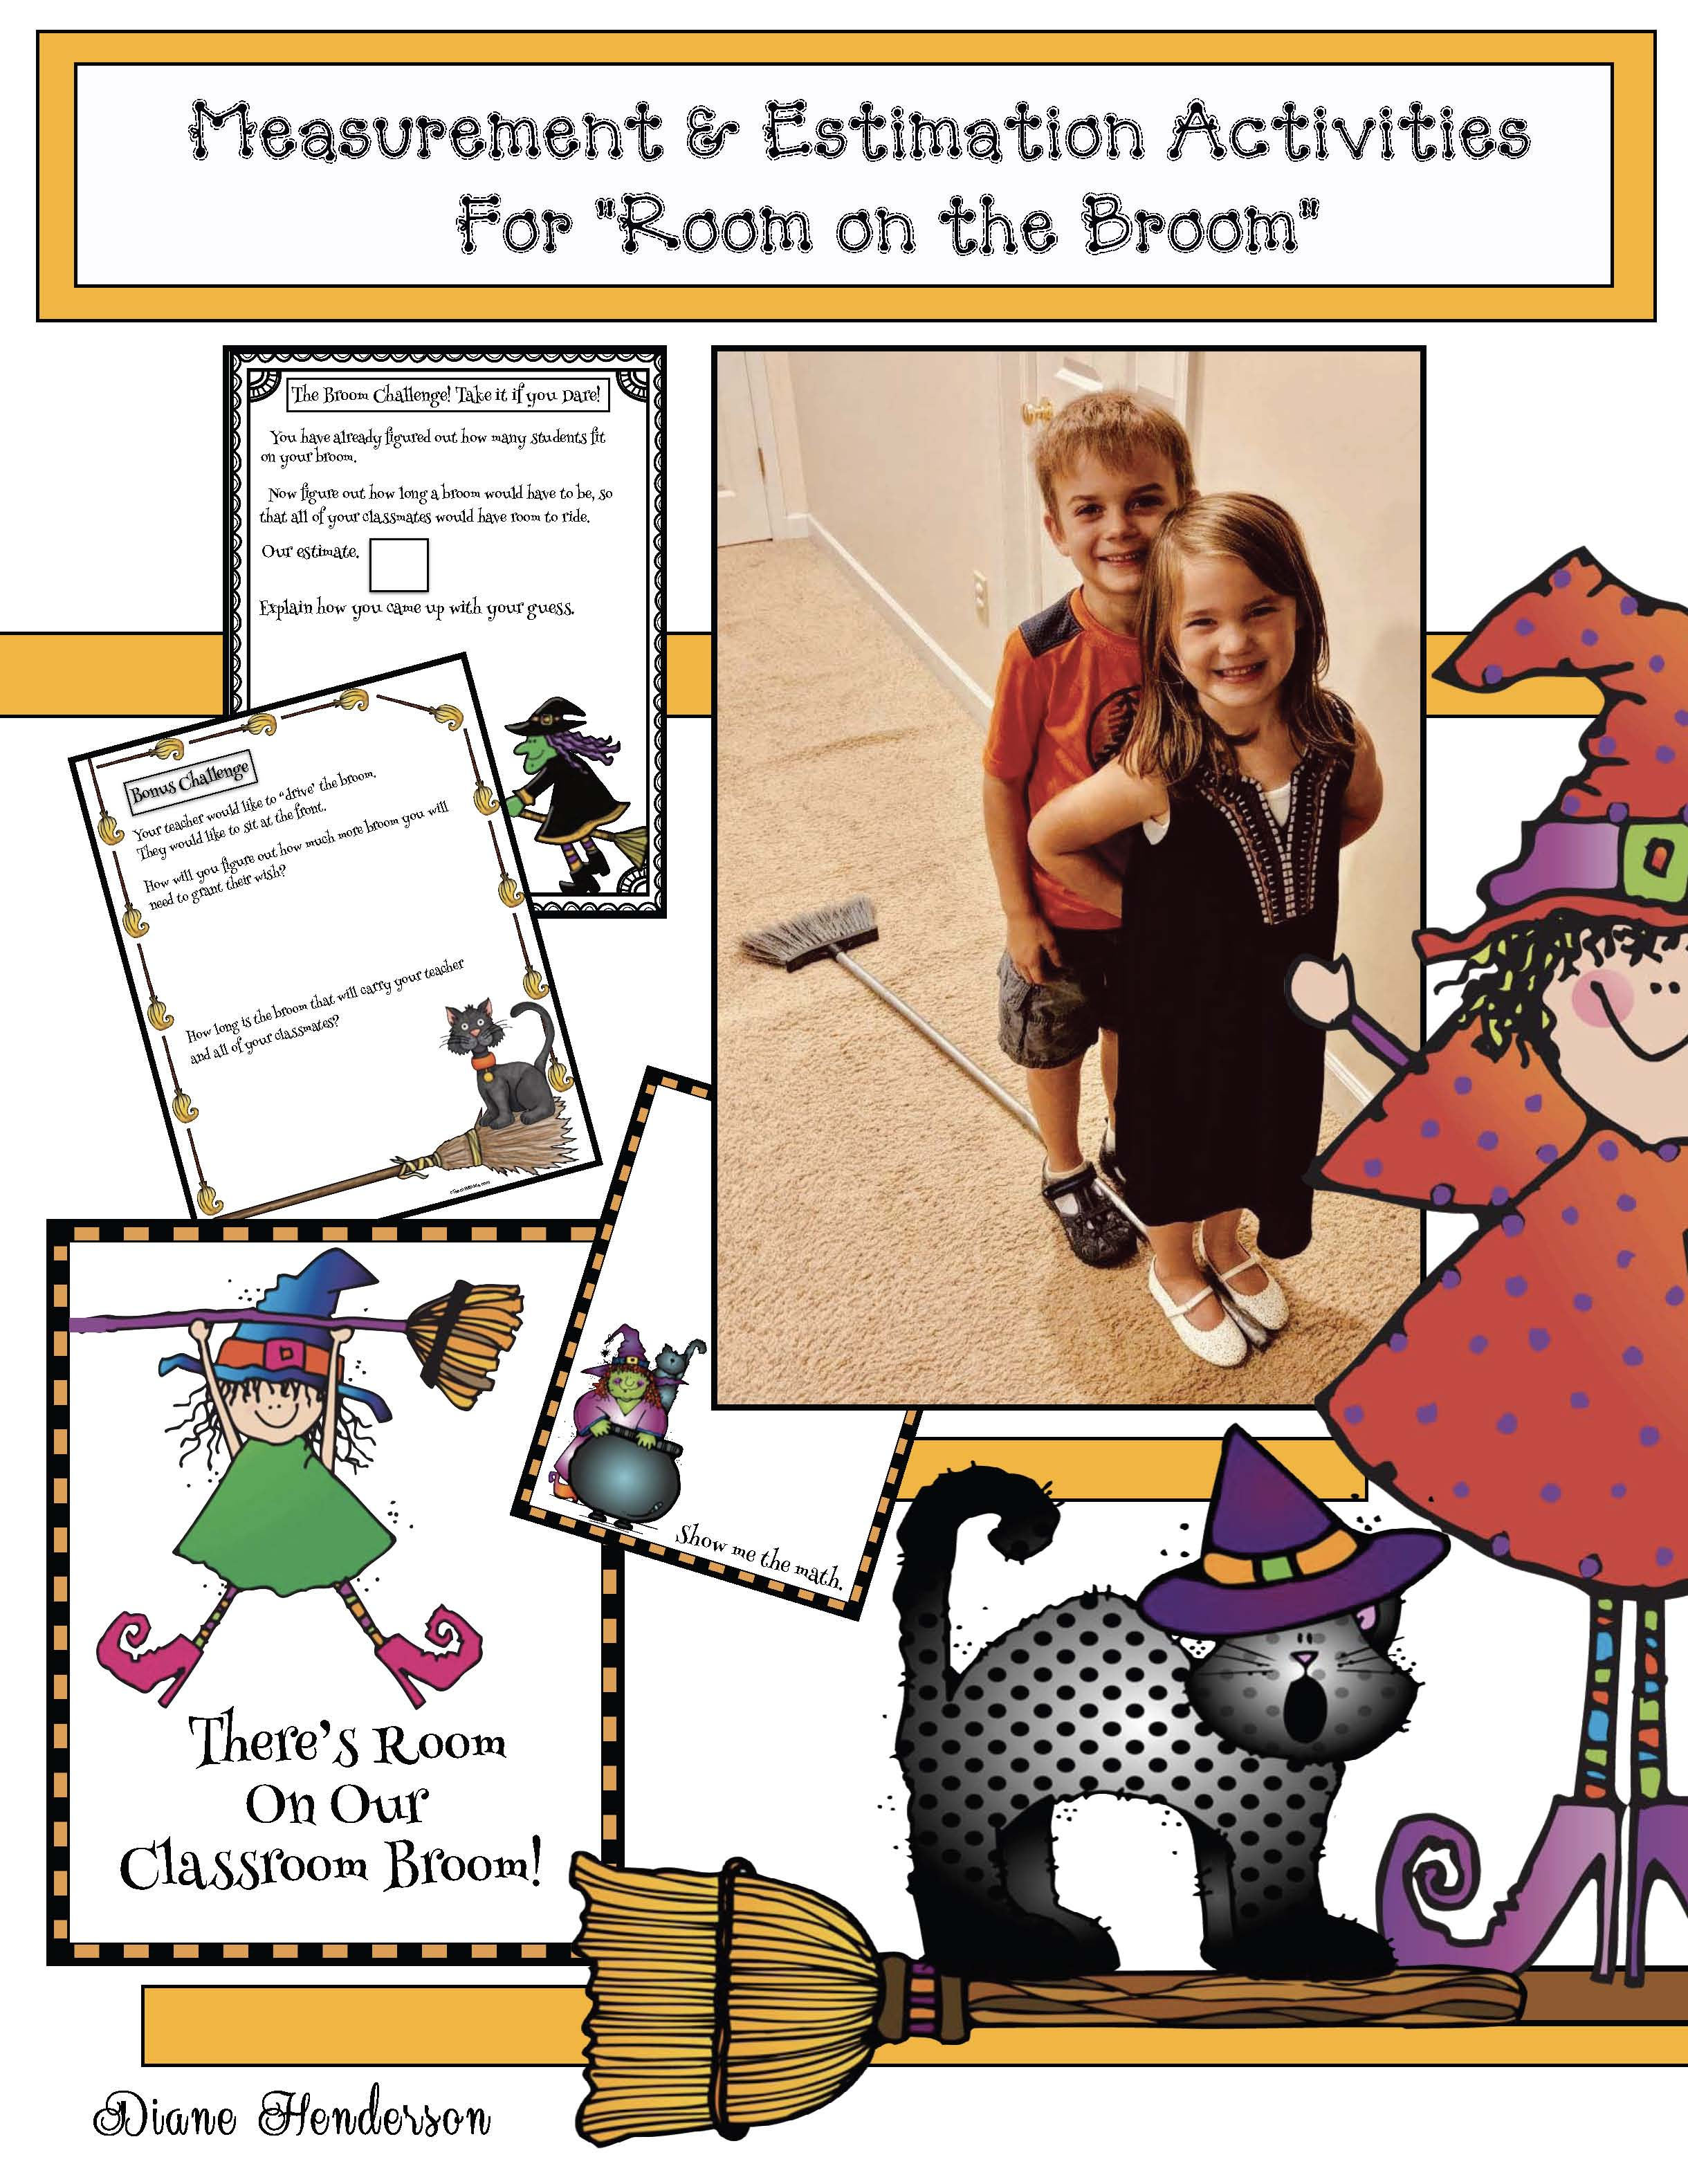 Activities for Room on the Broom, Halloween activities, Measurement activities for fall, small group activities for Halloween